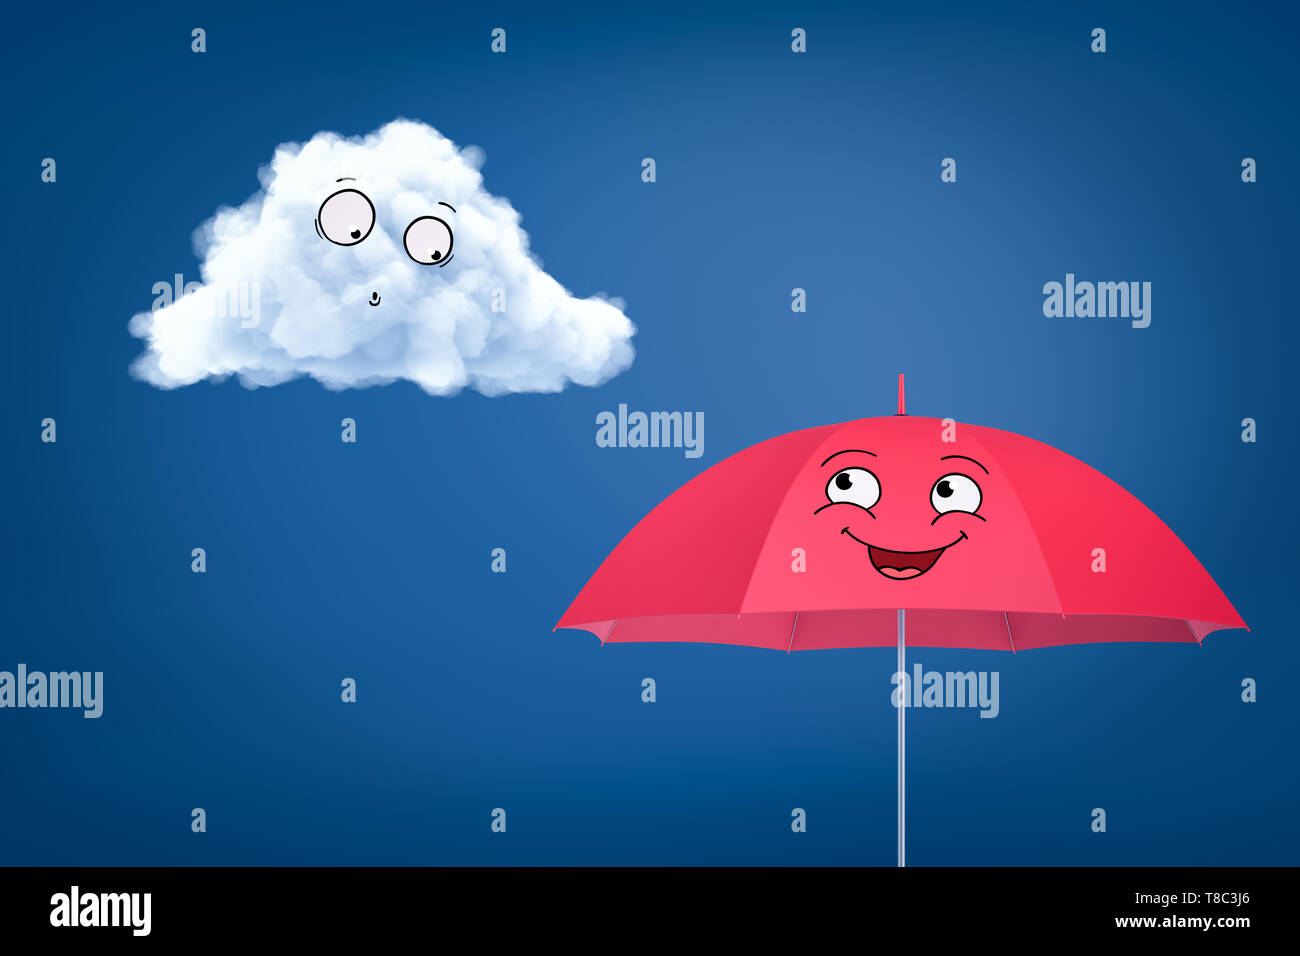 3d Rendering Of White Cartoon Smiley Cloud And Happy Pink Cartoon